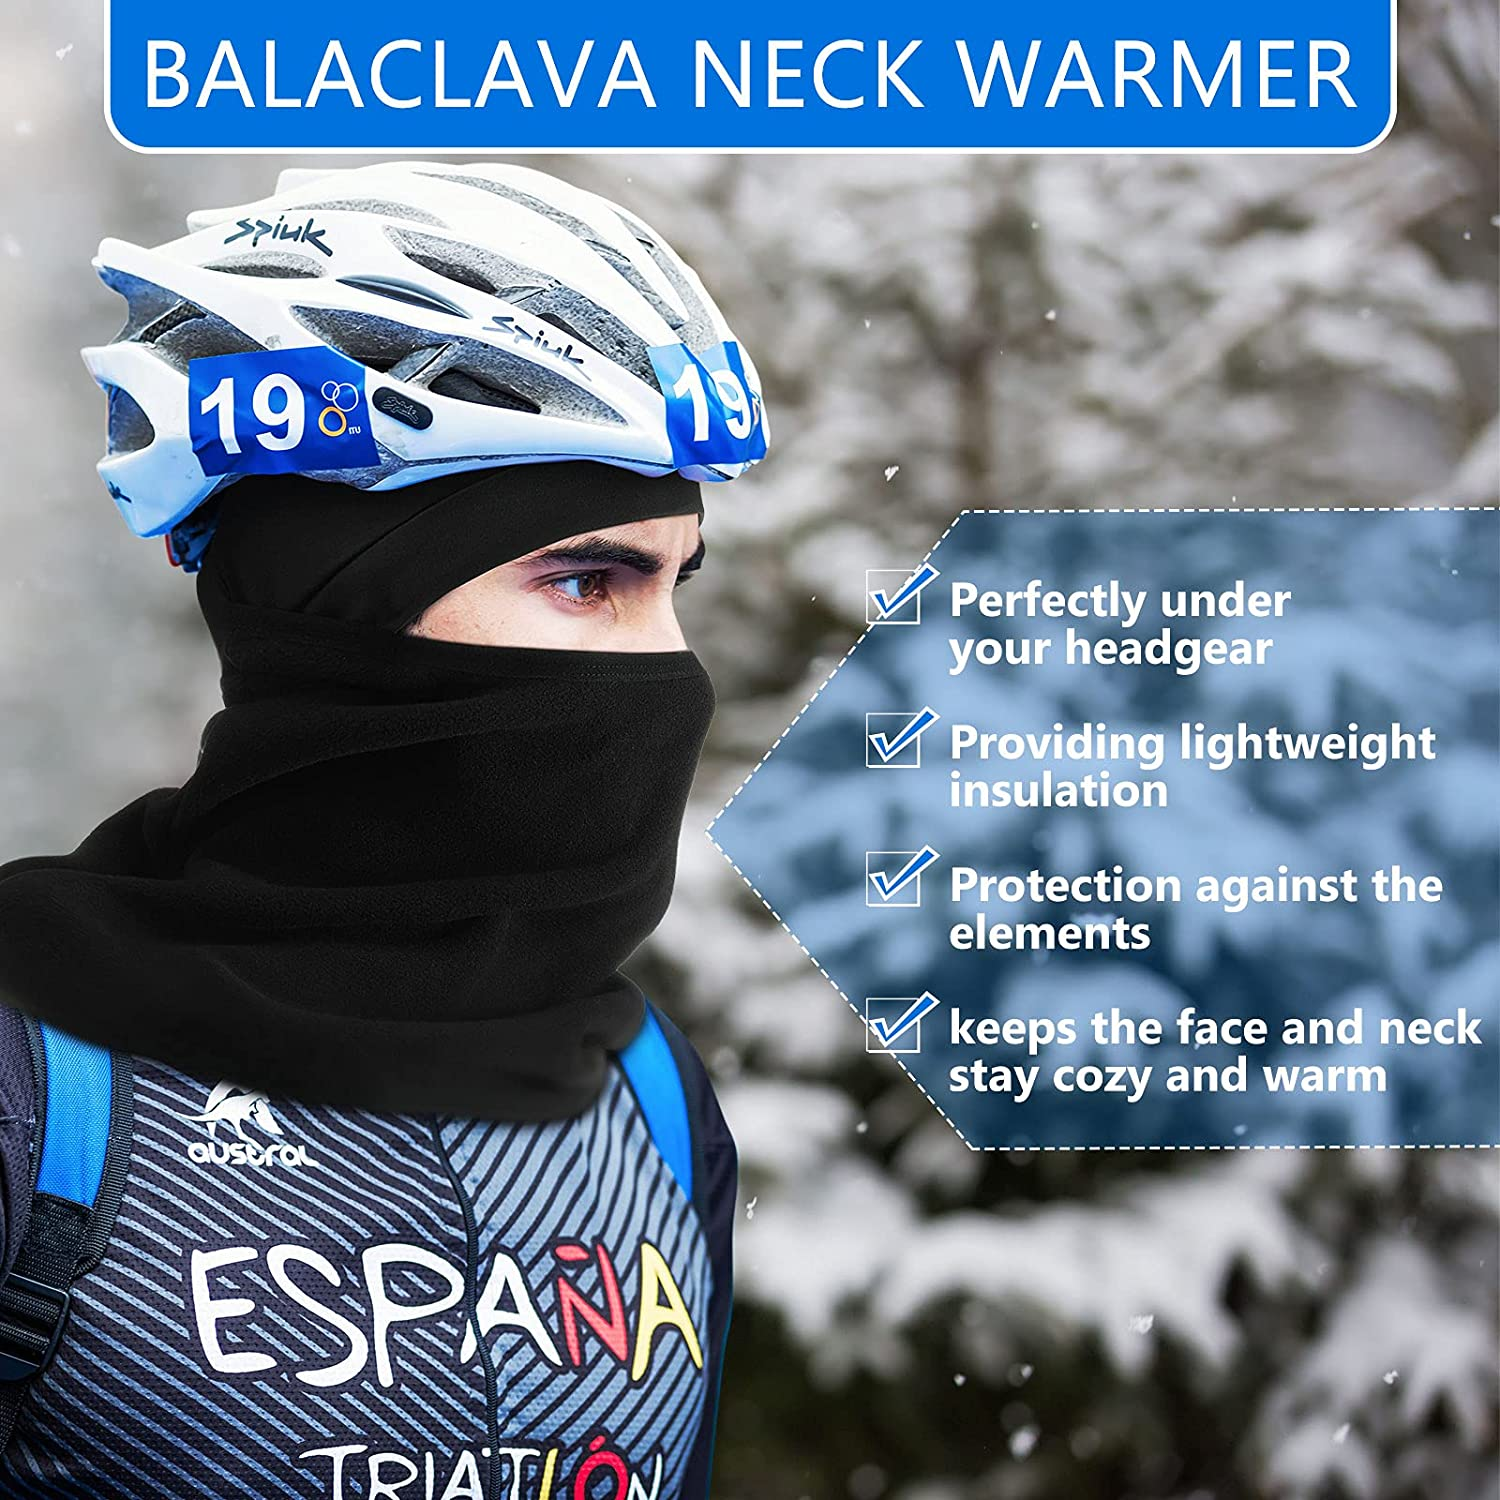 3 Pieces Winter Helmet Liner Skull Cap with Fleece Neck Gaiters Warmer Balaclava Ski Mask Winter Face Cover for Skiing, Snowboarding, Motorcycle Riding